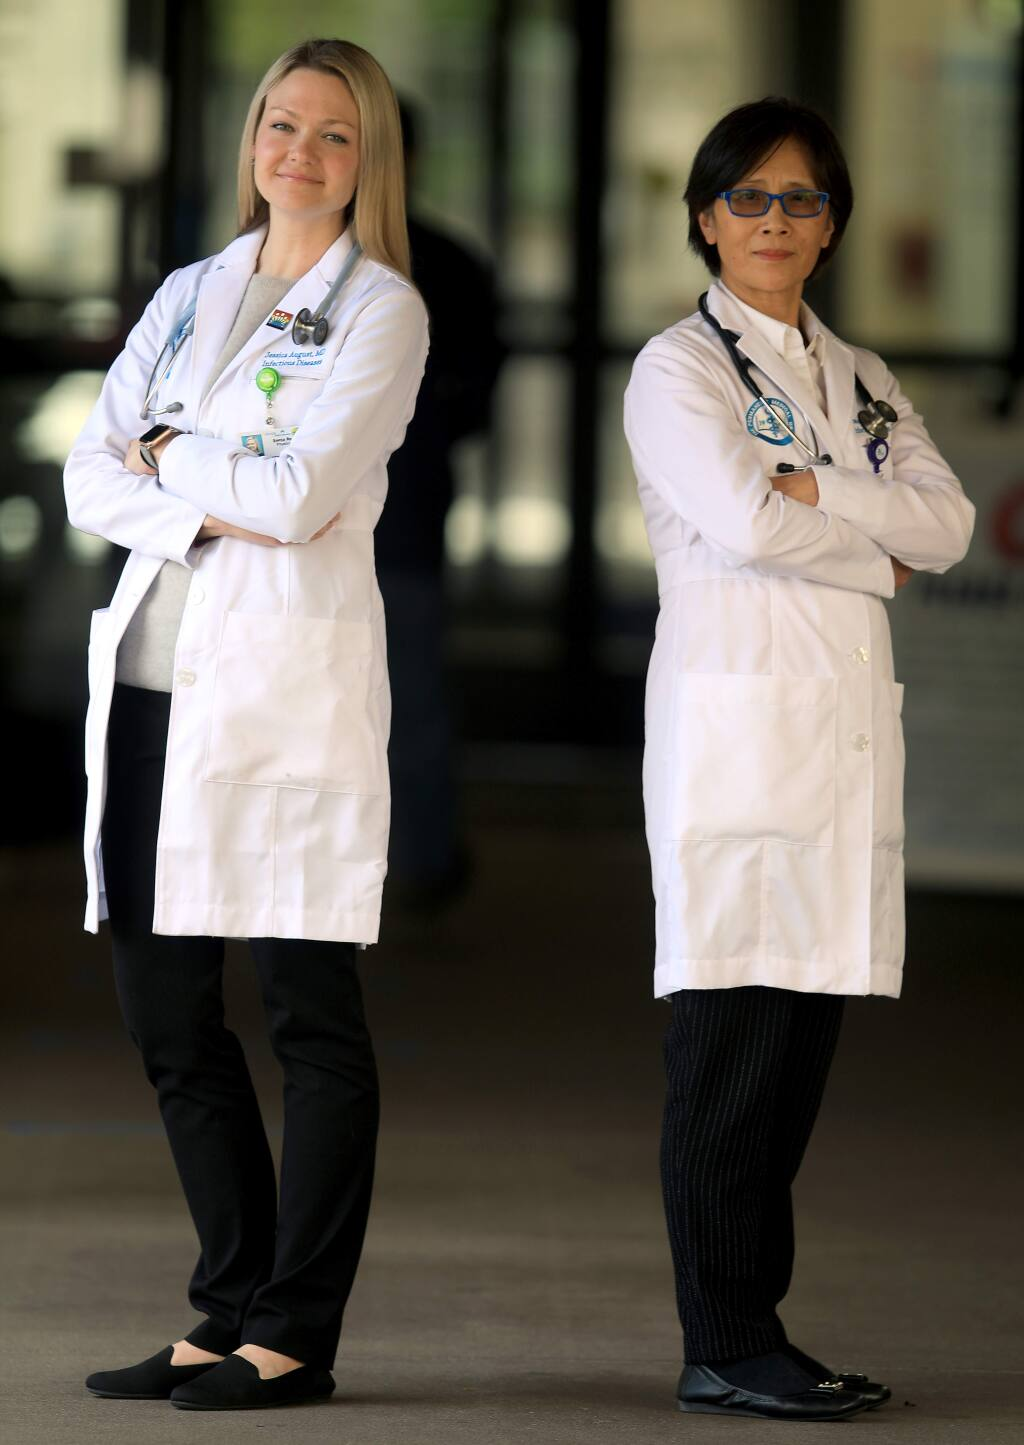 Kaiser Hospital's infectious disease specialists, Drs. Jessica August, left, and Shu Yang, Tuesday, March 31, 2020 in Santa Rosa. (Kent Porter / The Press Democrat) 2020